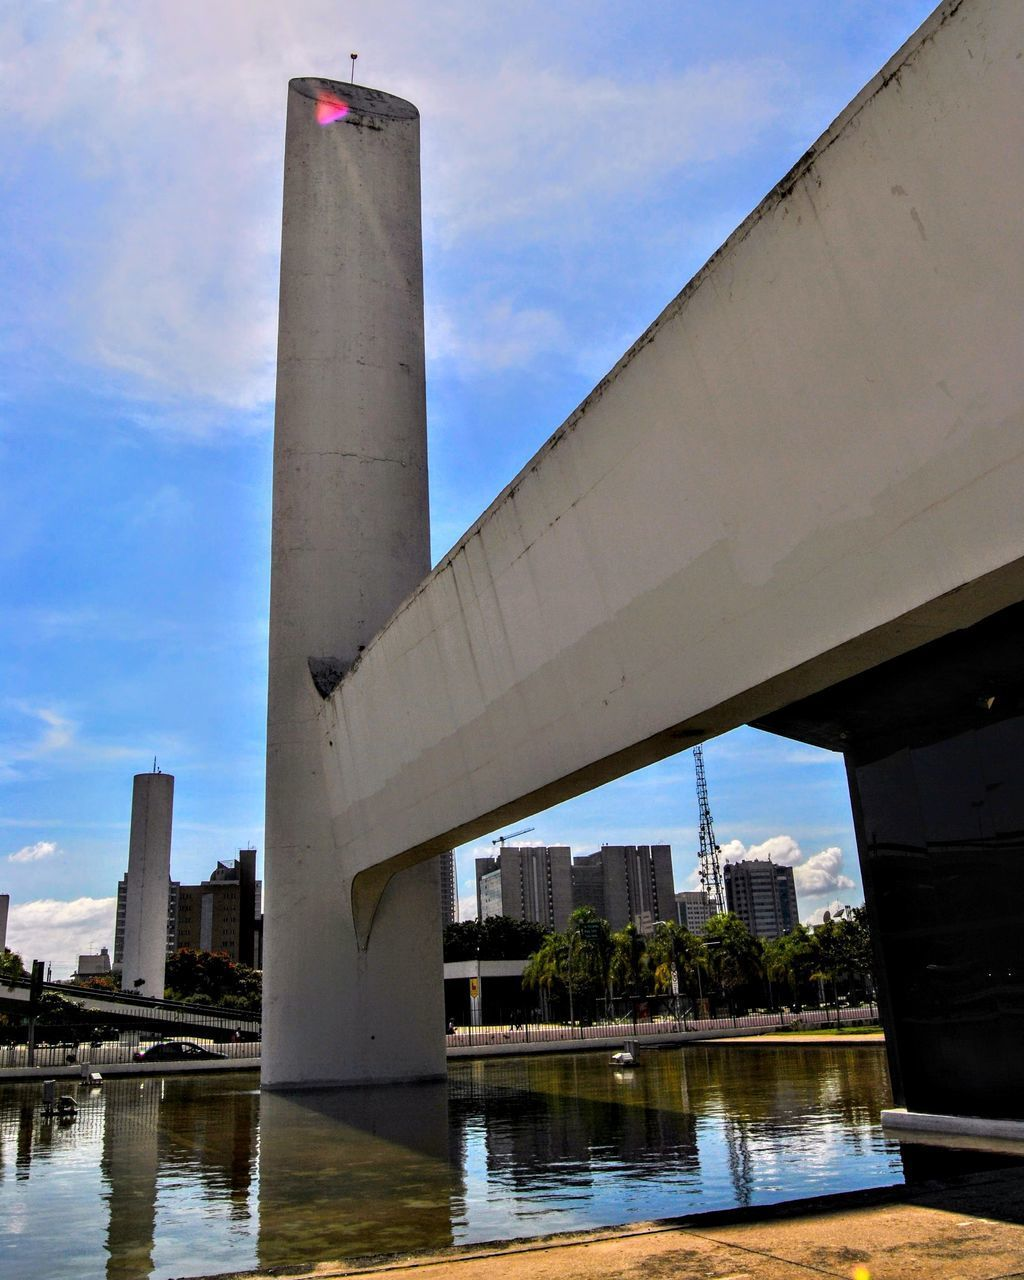 architecture, built structure, bridge - man made structure, water, connection, building exterior, day, river, architectural column, sky, waterfront, no people, sunlight, outdoors, low angle view, city, travel destinations, nature